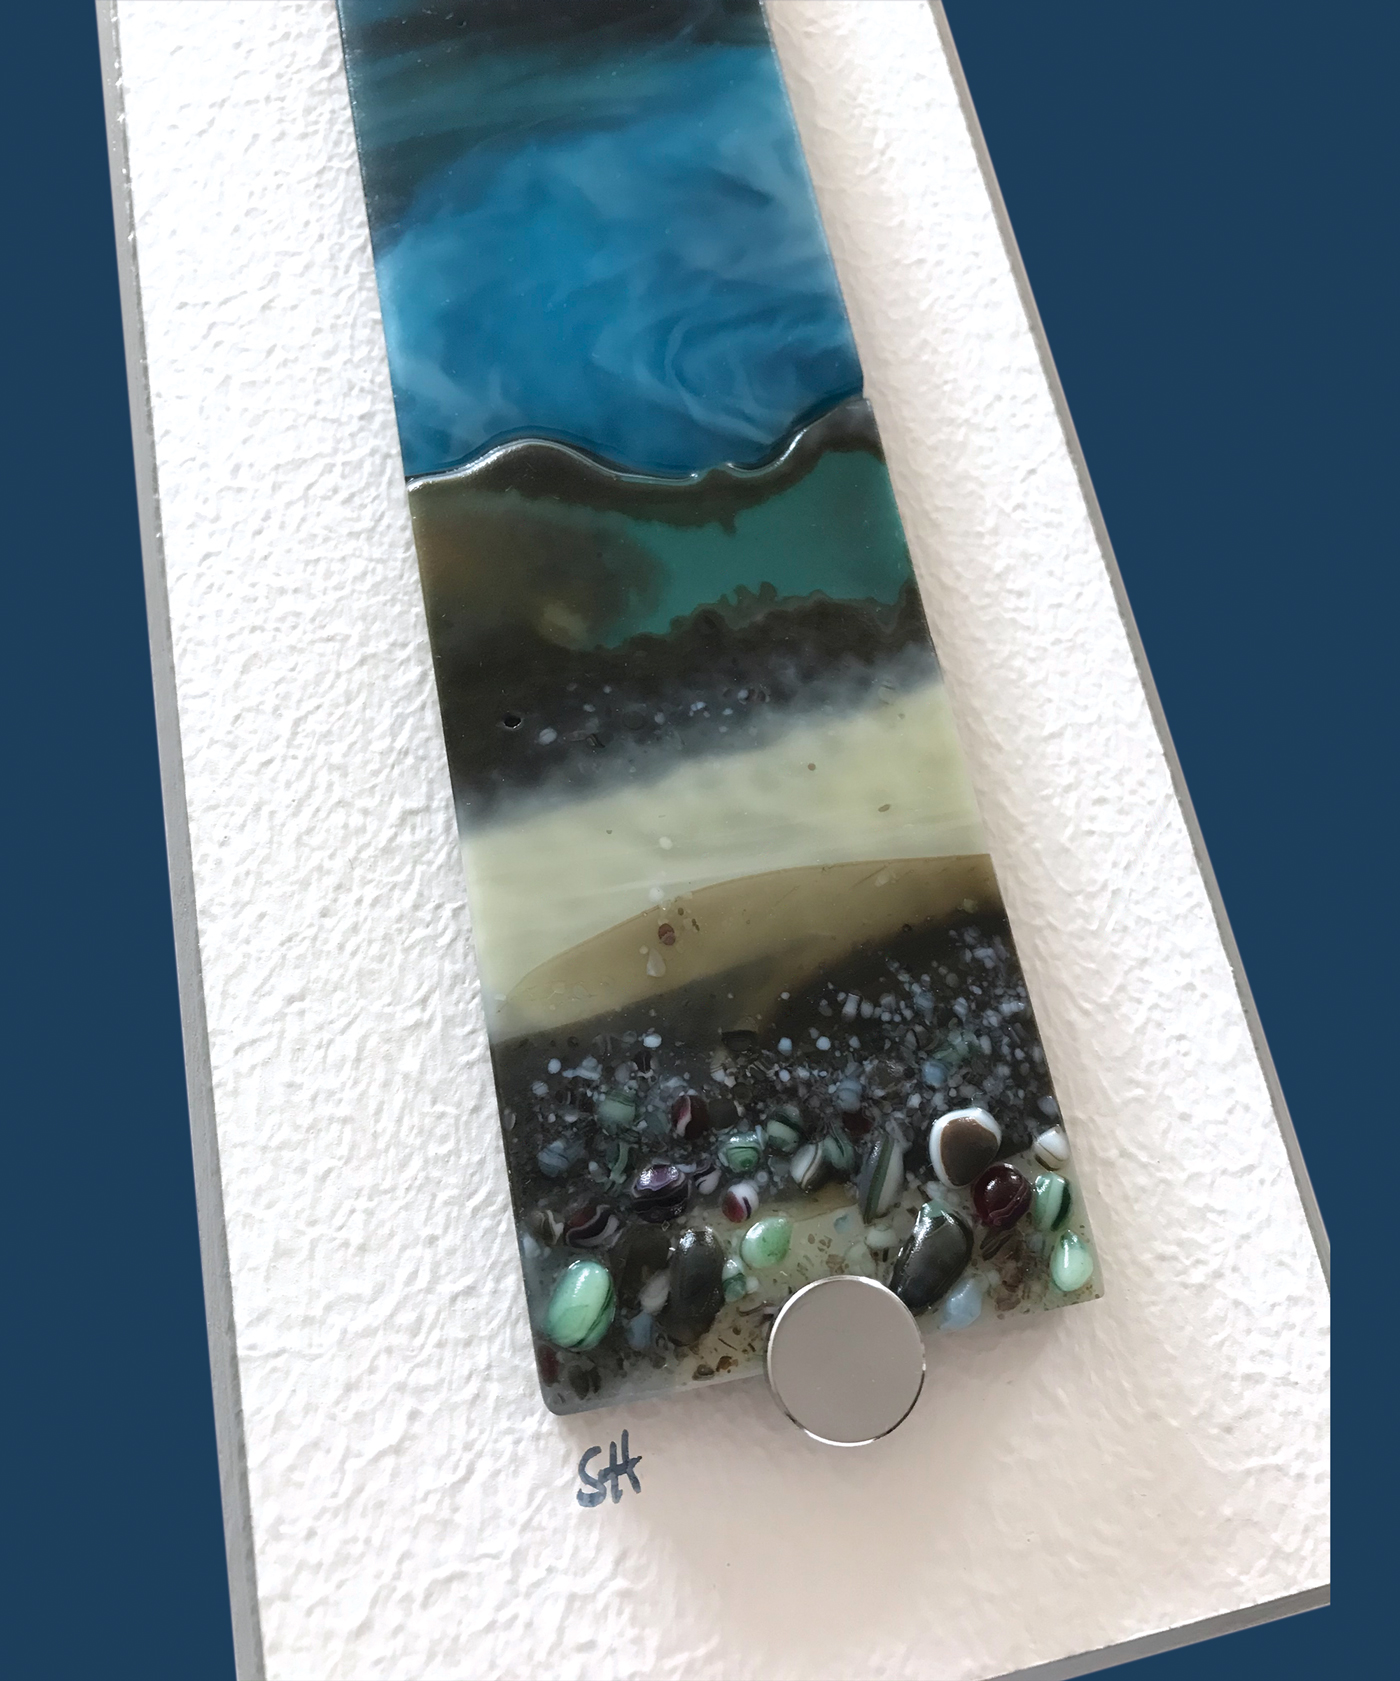 Winter Landscapes fused glass wall art, moody landscapes – greens/browns/vanilla foreground and dark blue sky. Satin finish